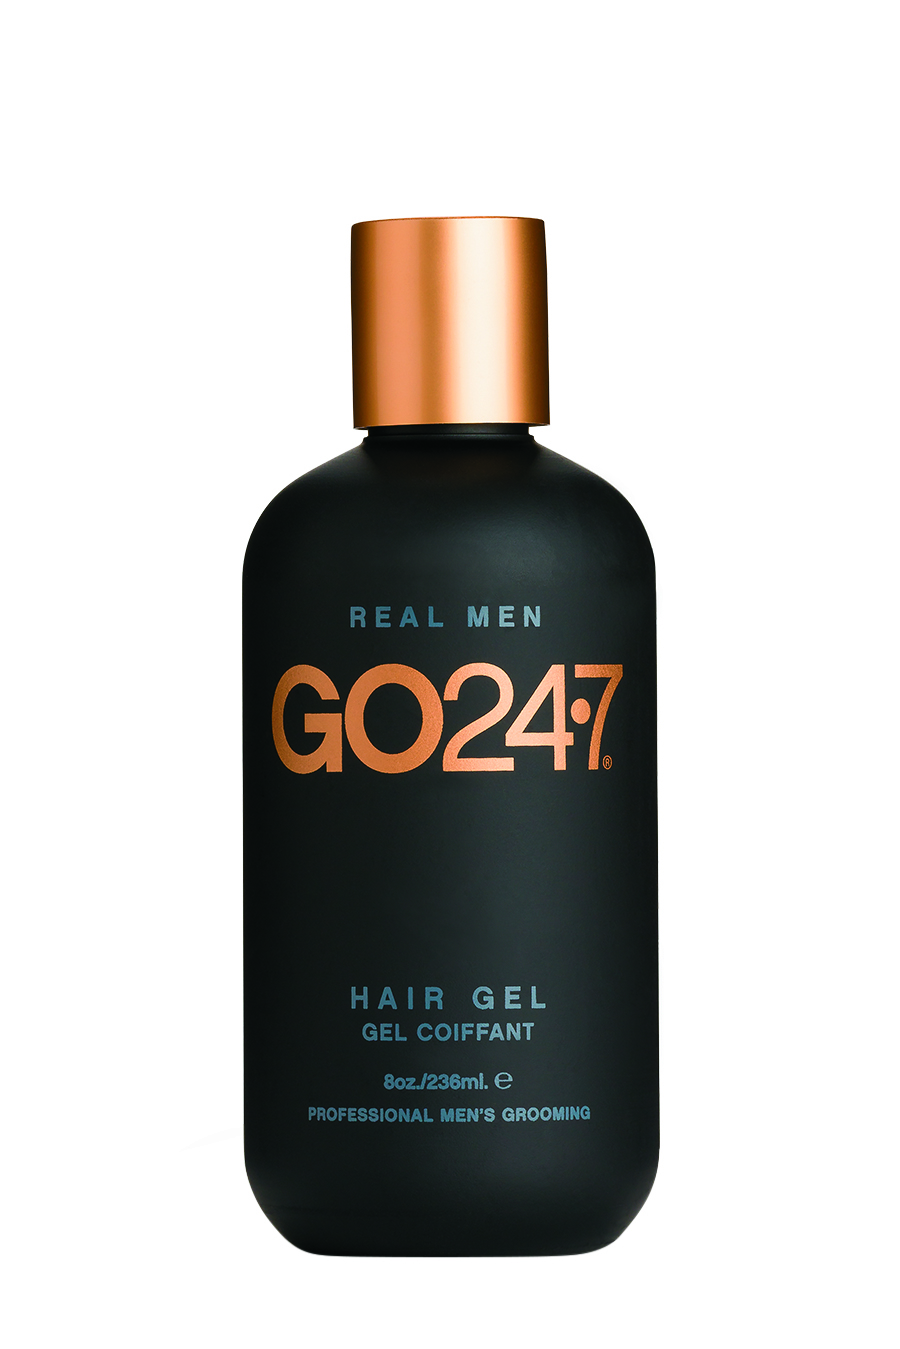 Unite Go 24.7  Hair Gel provides firm hold and can be used on damp or dry hair to keep a style in place.